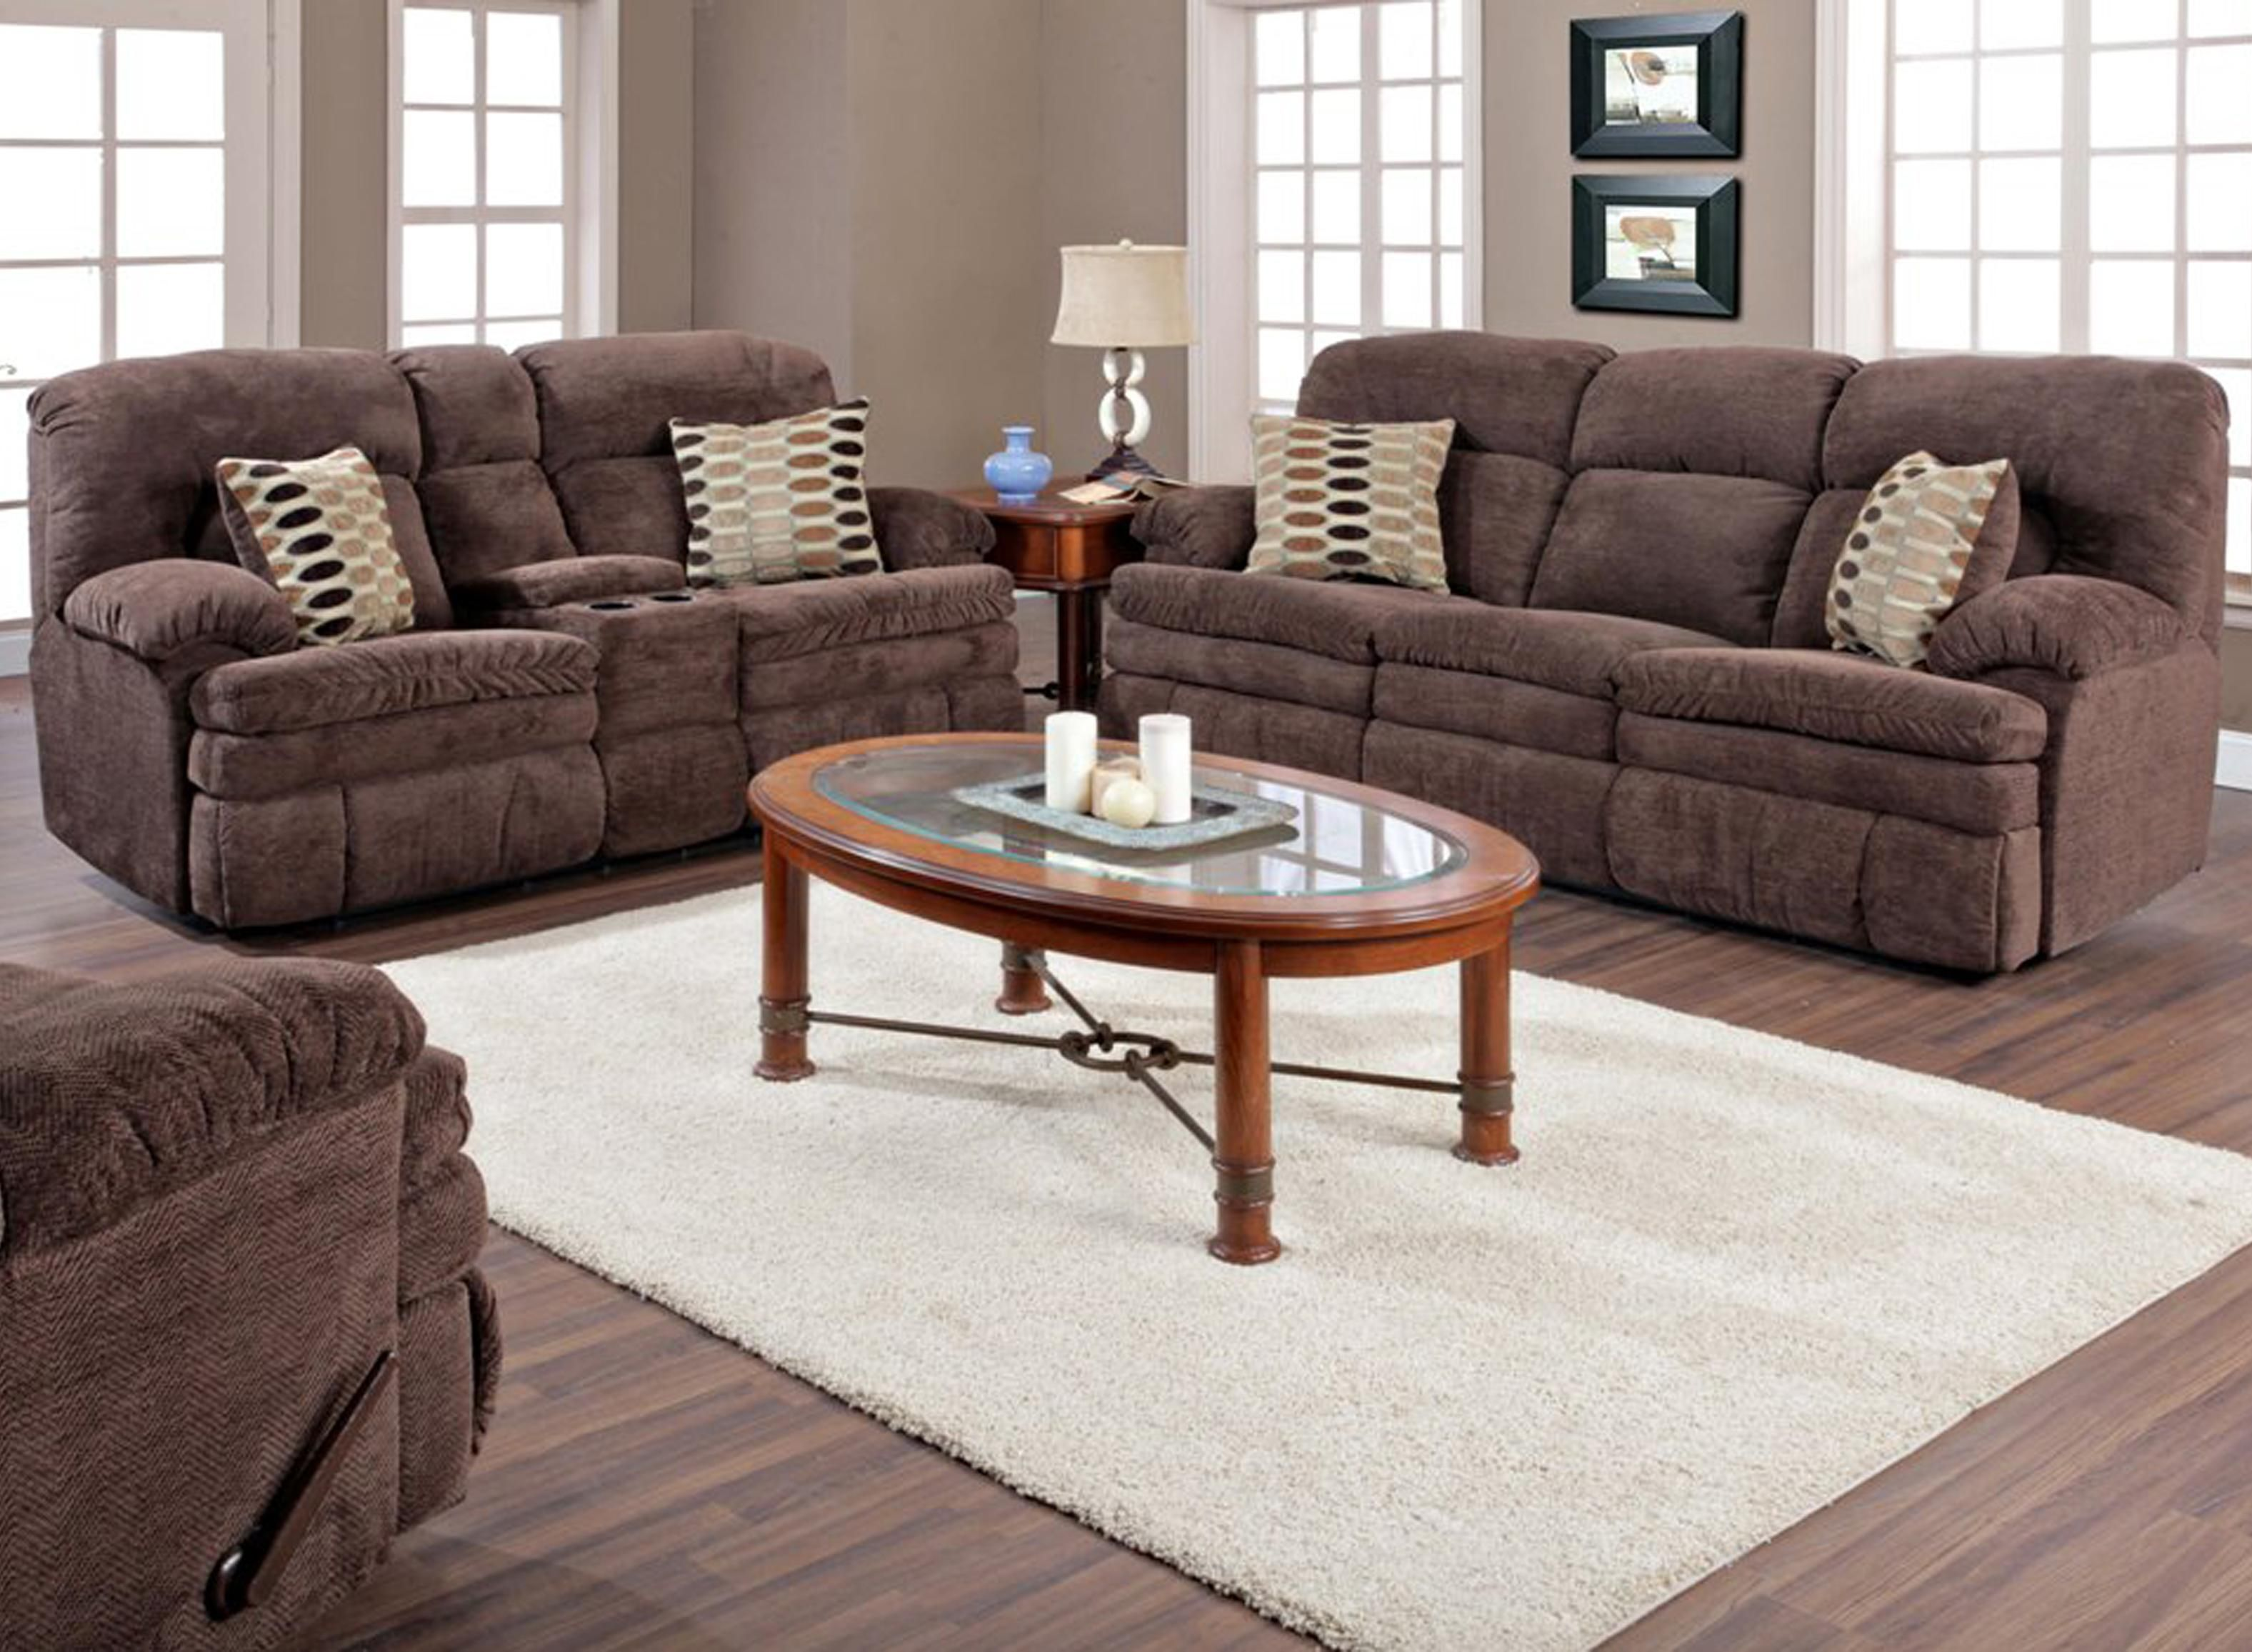 Homestretch Furniture 103 Chocolate Series Featuring Reclining Sectional Sofa Double Reclining